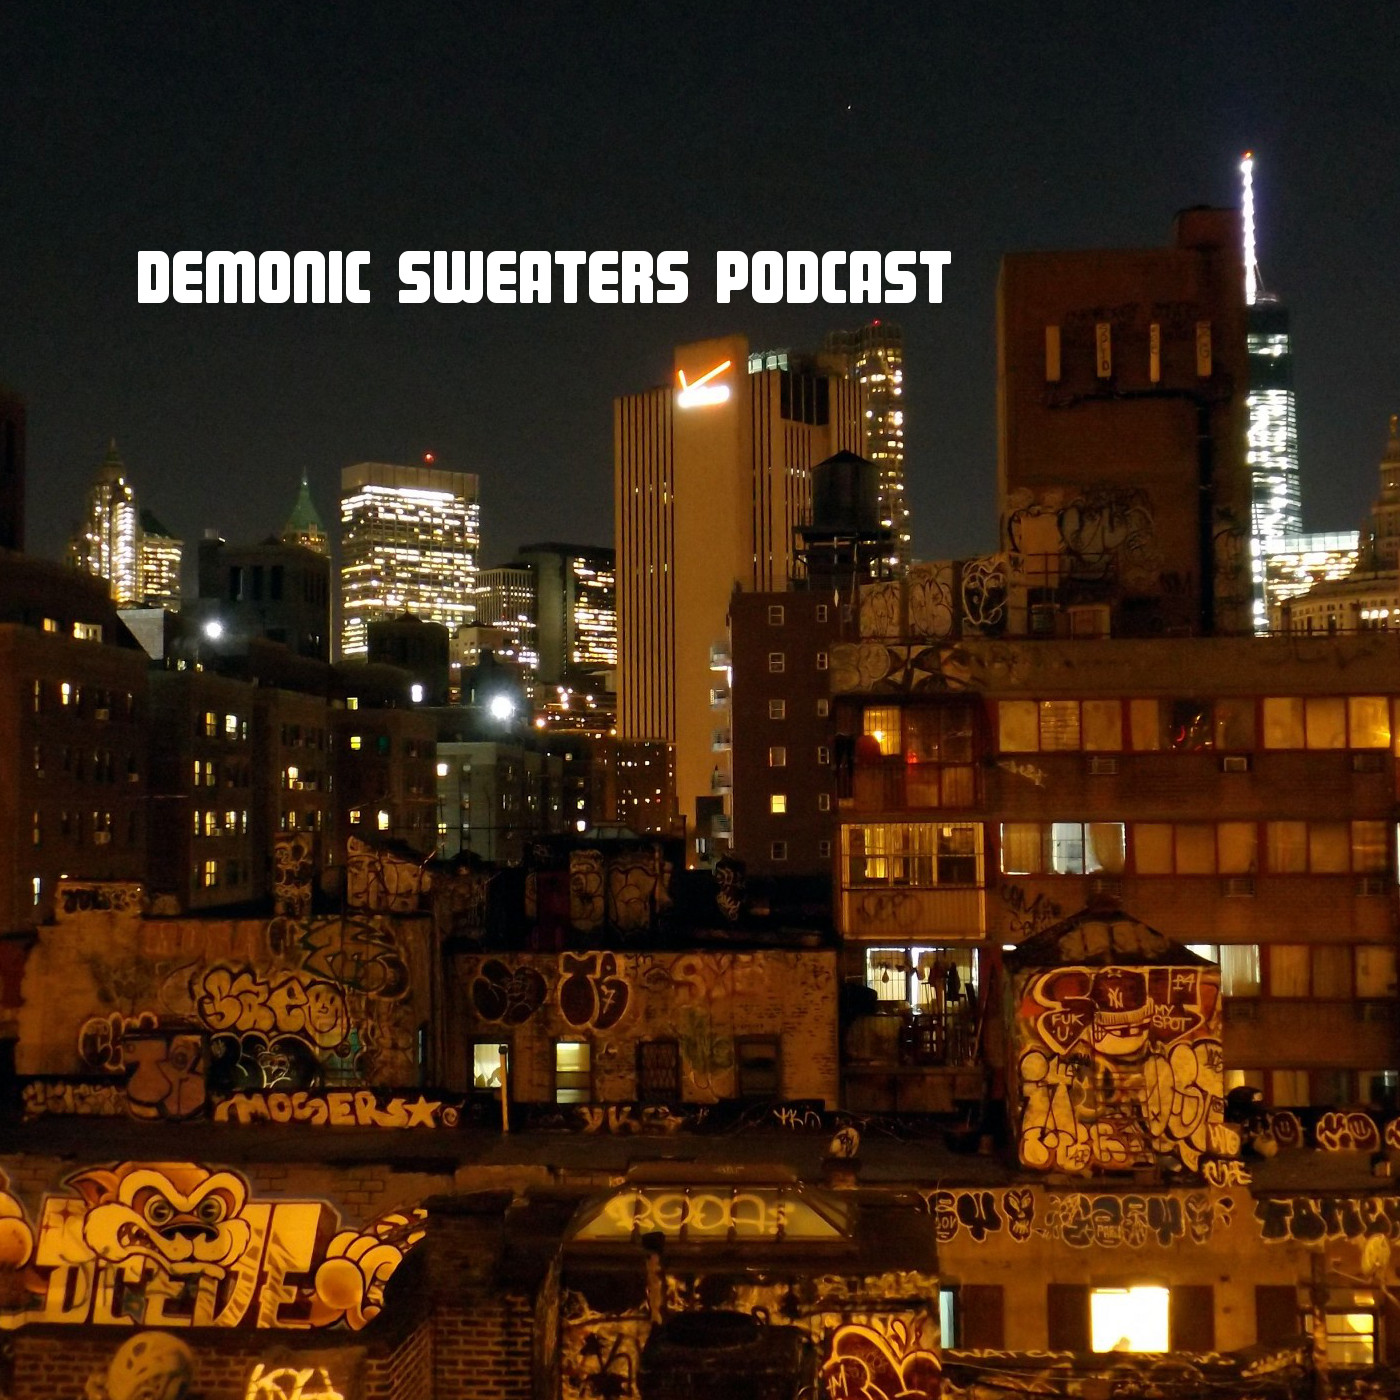 Demonic Sweaters Podcast